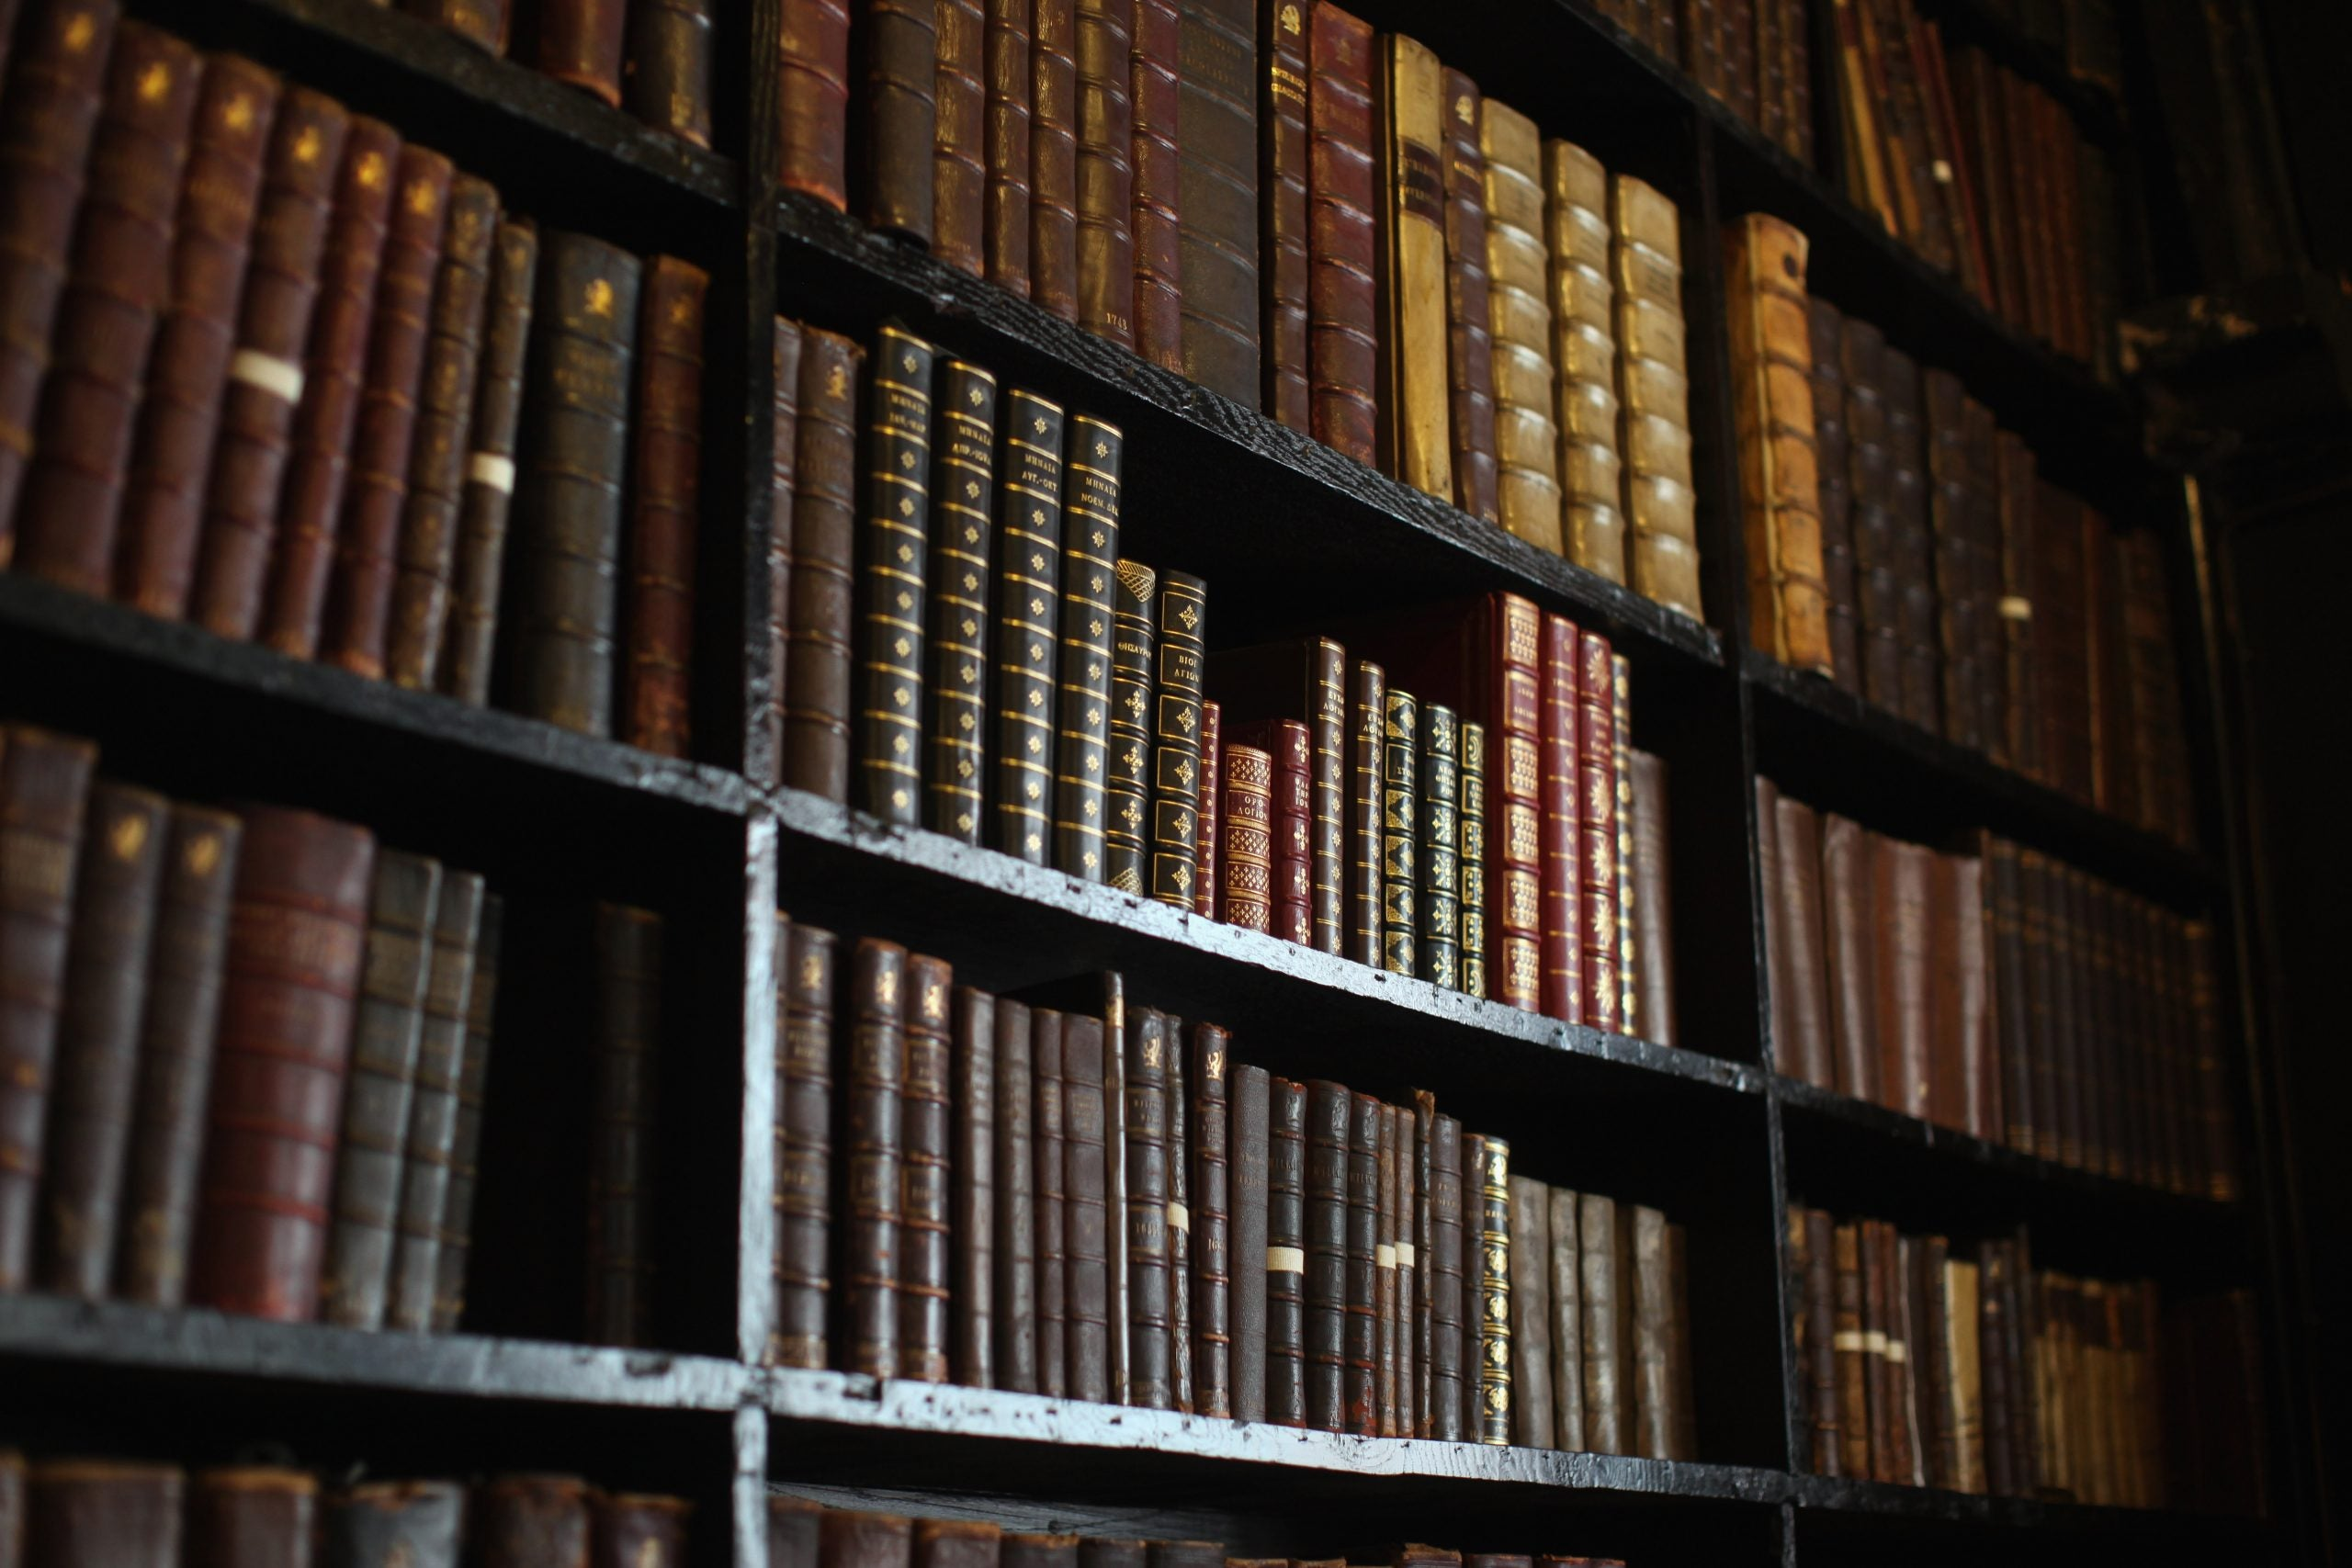 I can't stand the earnest worship of books as objects – it's literary posturing of the first degree